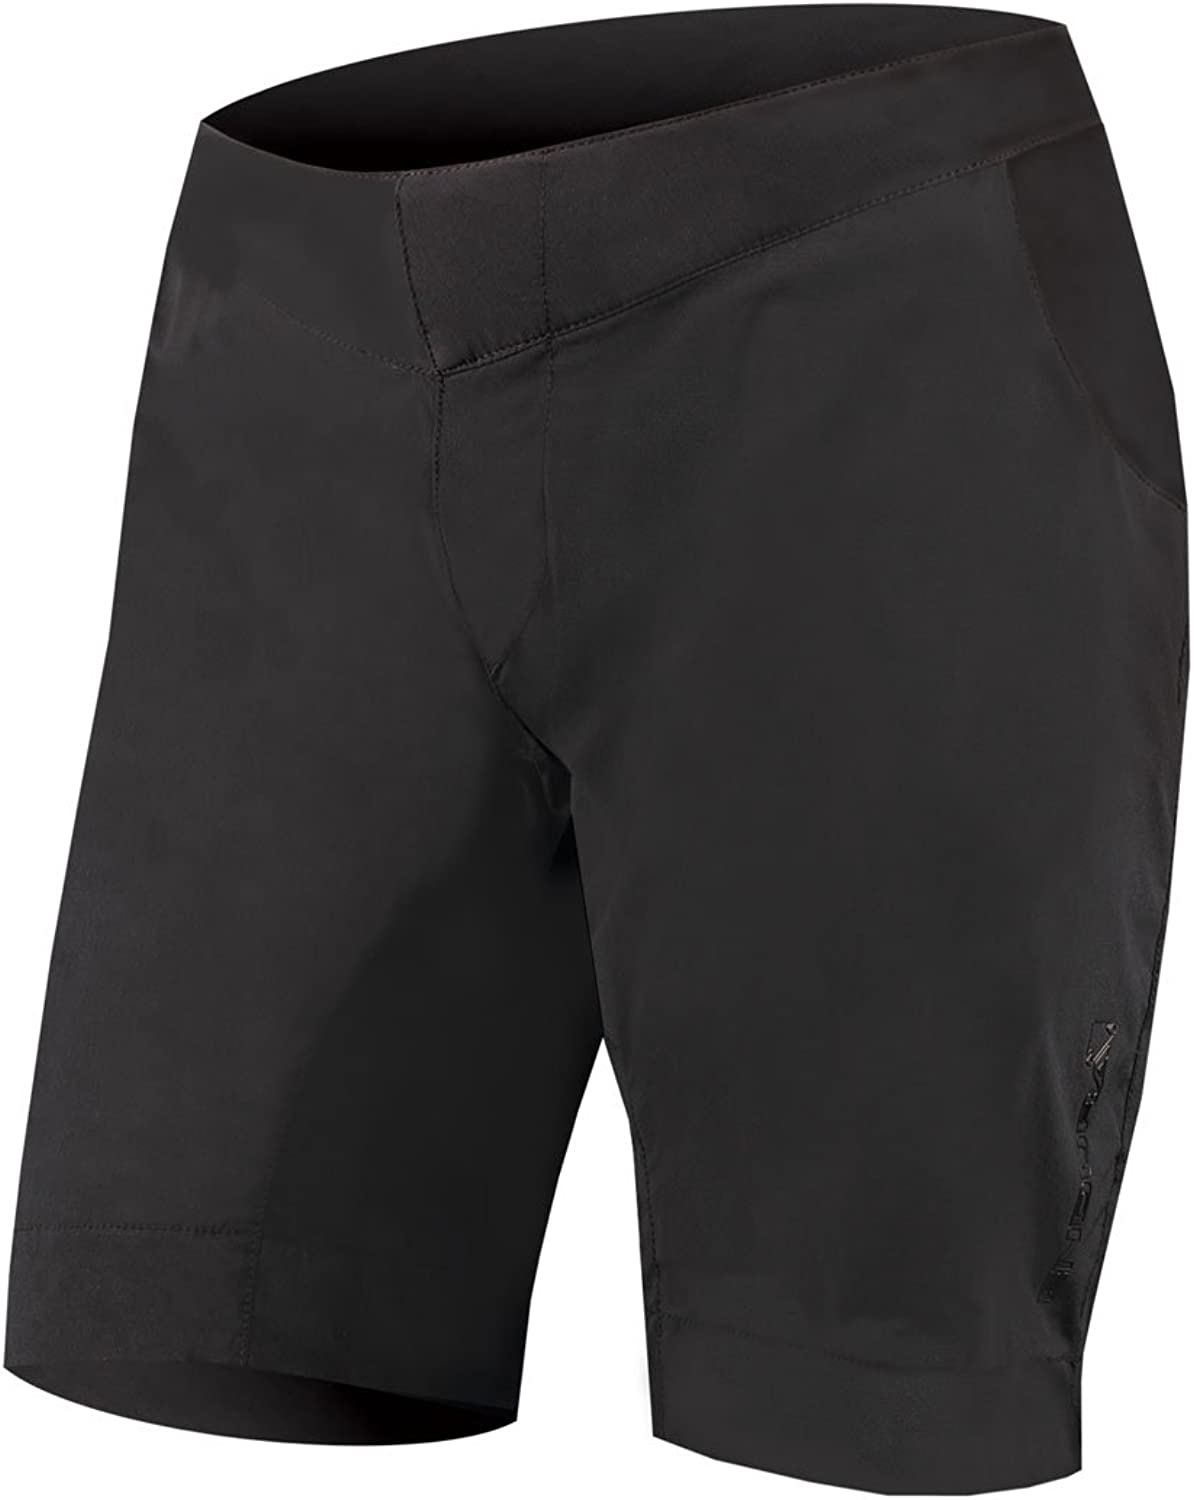 Endura Womens Trekkit Baggy Cycling Short (Small Black)